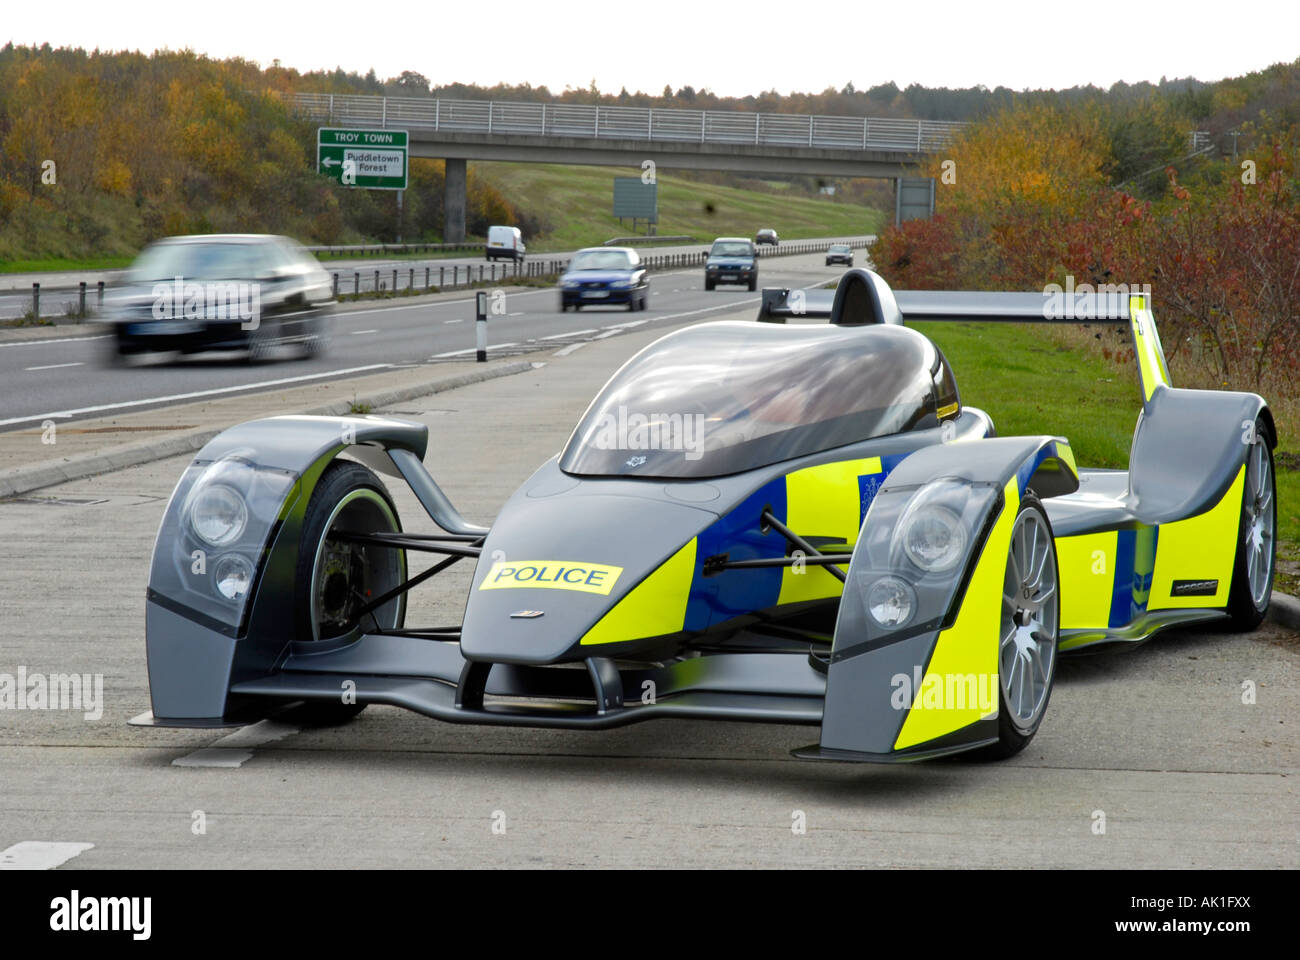 British Sports Cars For Sale >> Caparo T1 supercar with police markings, Britain, UK Stock Photo, Royalty Free Image: 14854321 ...